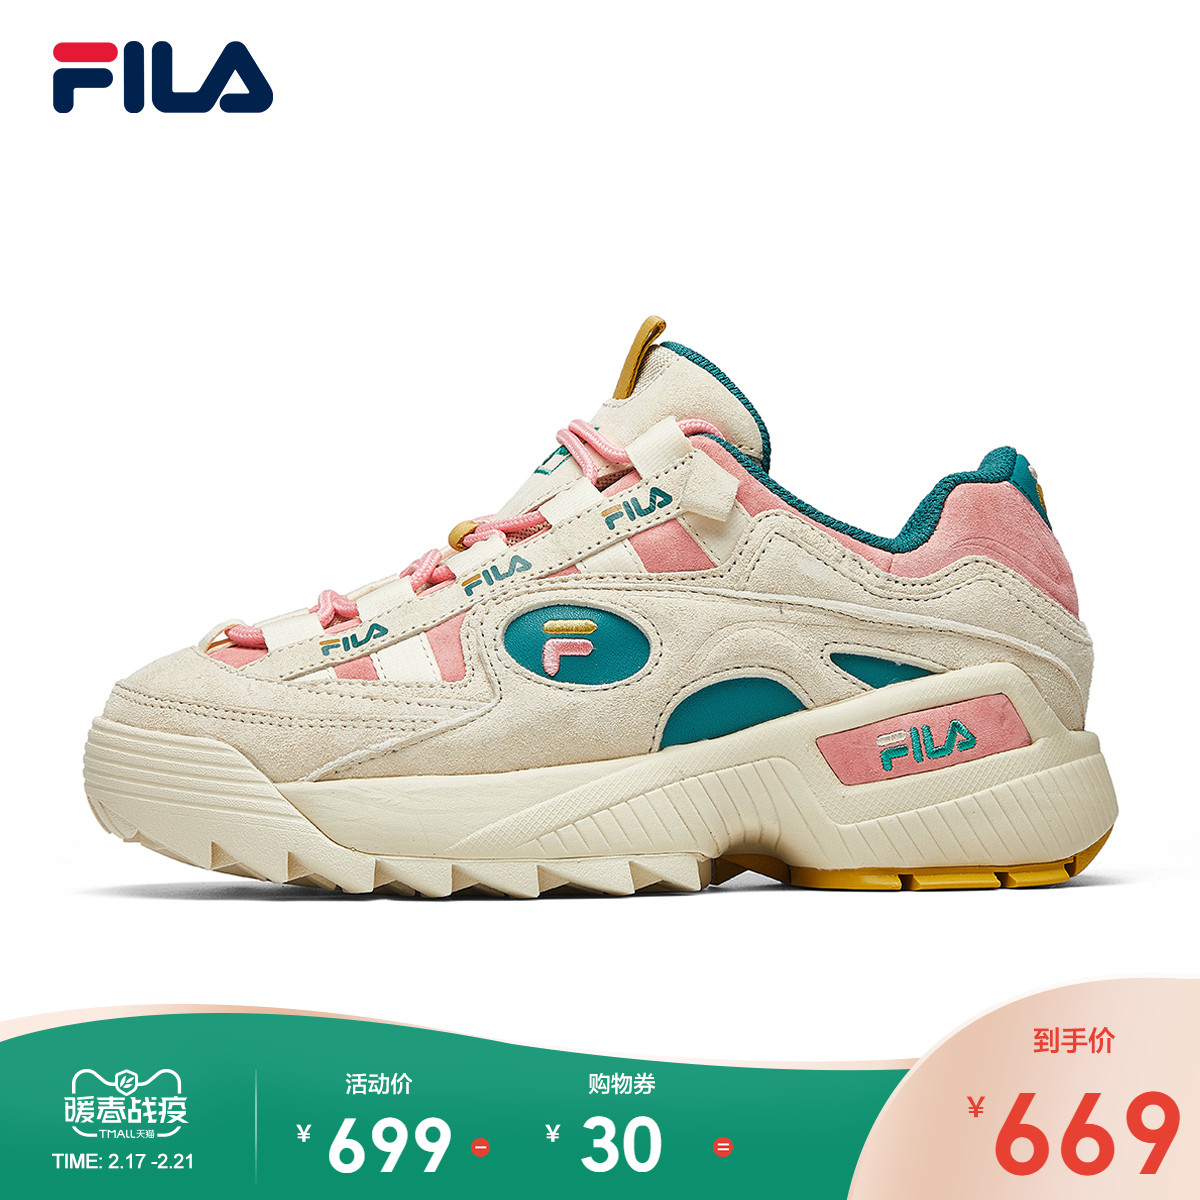 Feile official flagship store D-Information father shoes women 2019 new women's shoes casual shoes sneakers